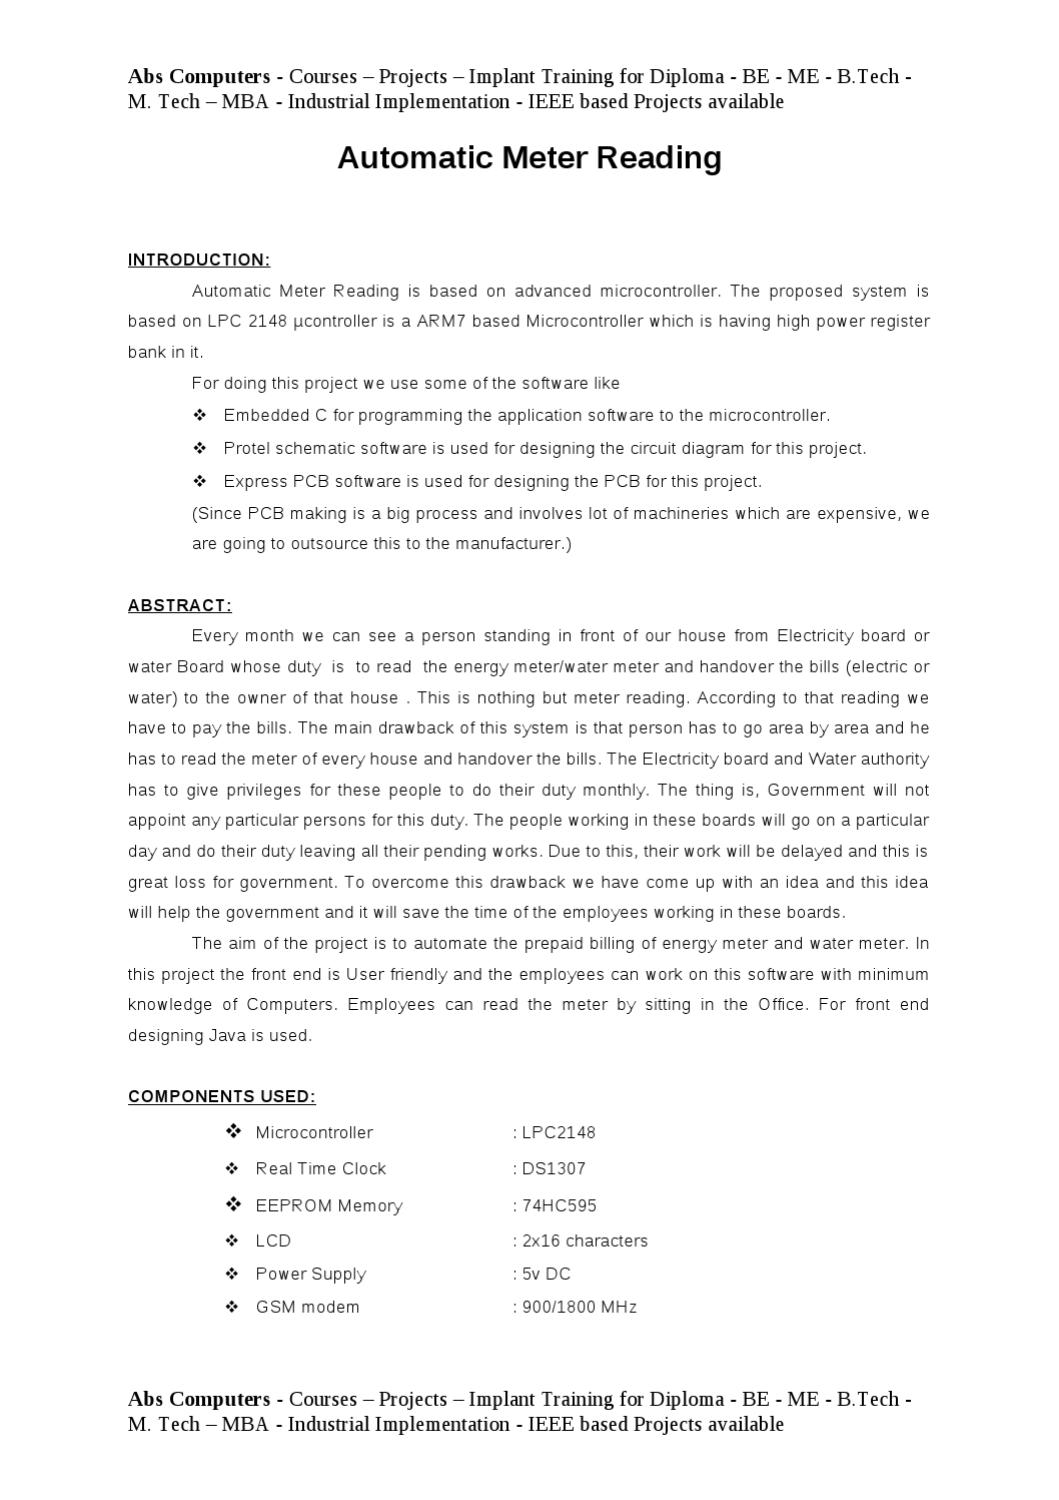 Automatic Meter Reading - Synopsis - Abs Computers - Courses